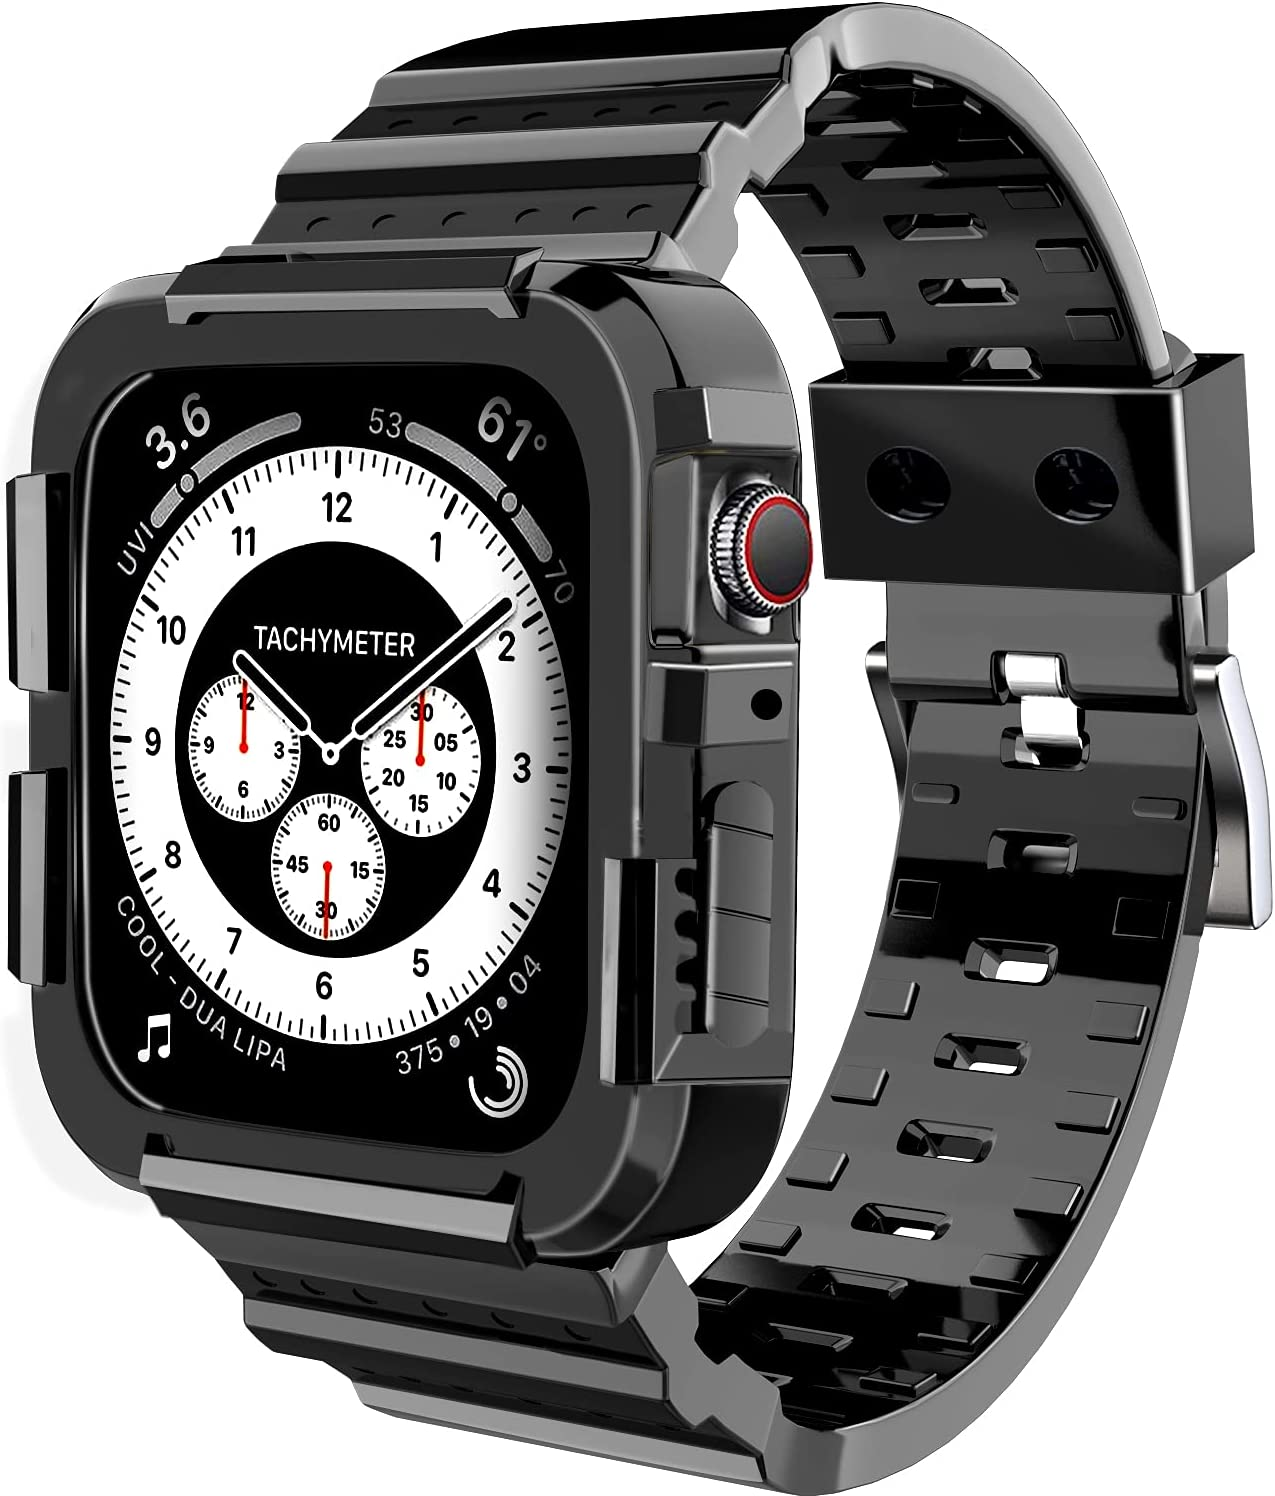 SLYEN Black Apple Watch Band with Case Compatible with Apple Watch 42mm 44mm Men Women,Rugged TPU Replacement Strap with Protective Bumper for iWatch Series SE/6/5/4/3/2